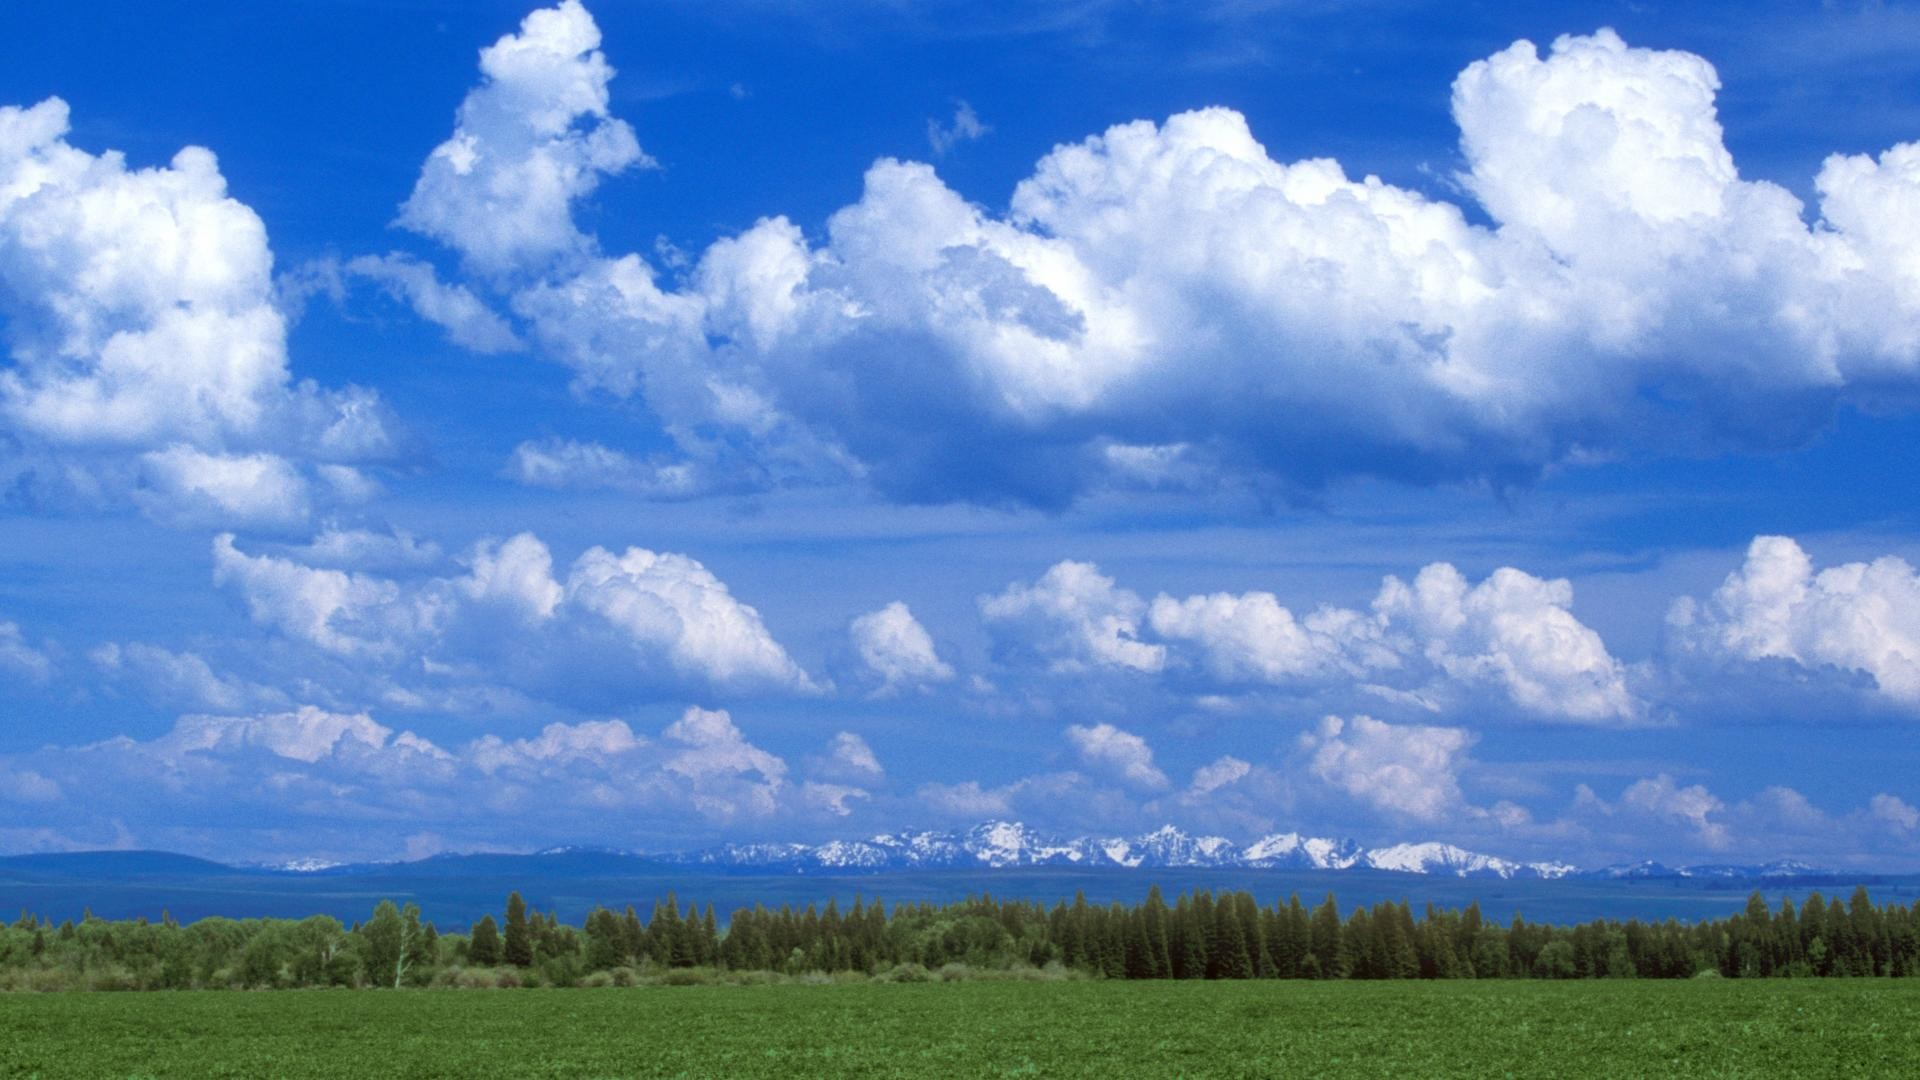 Backgrounds Oregon Background Joseph Partly Sky Cloudy HD wallpapers .